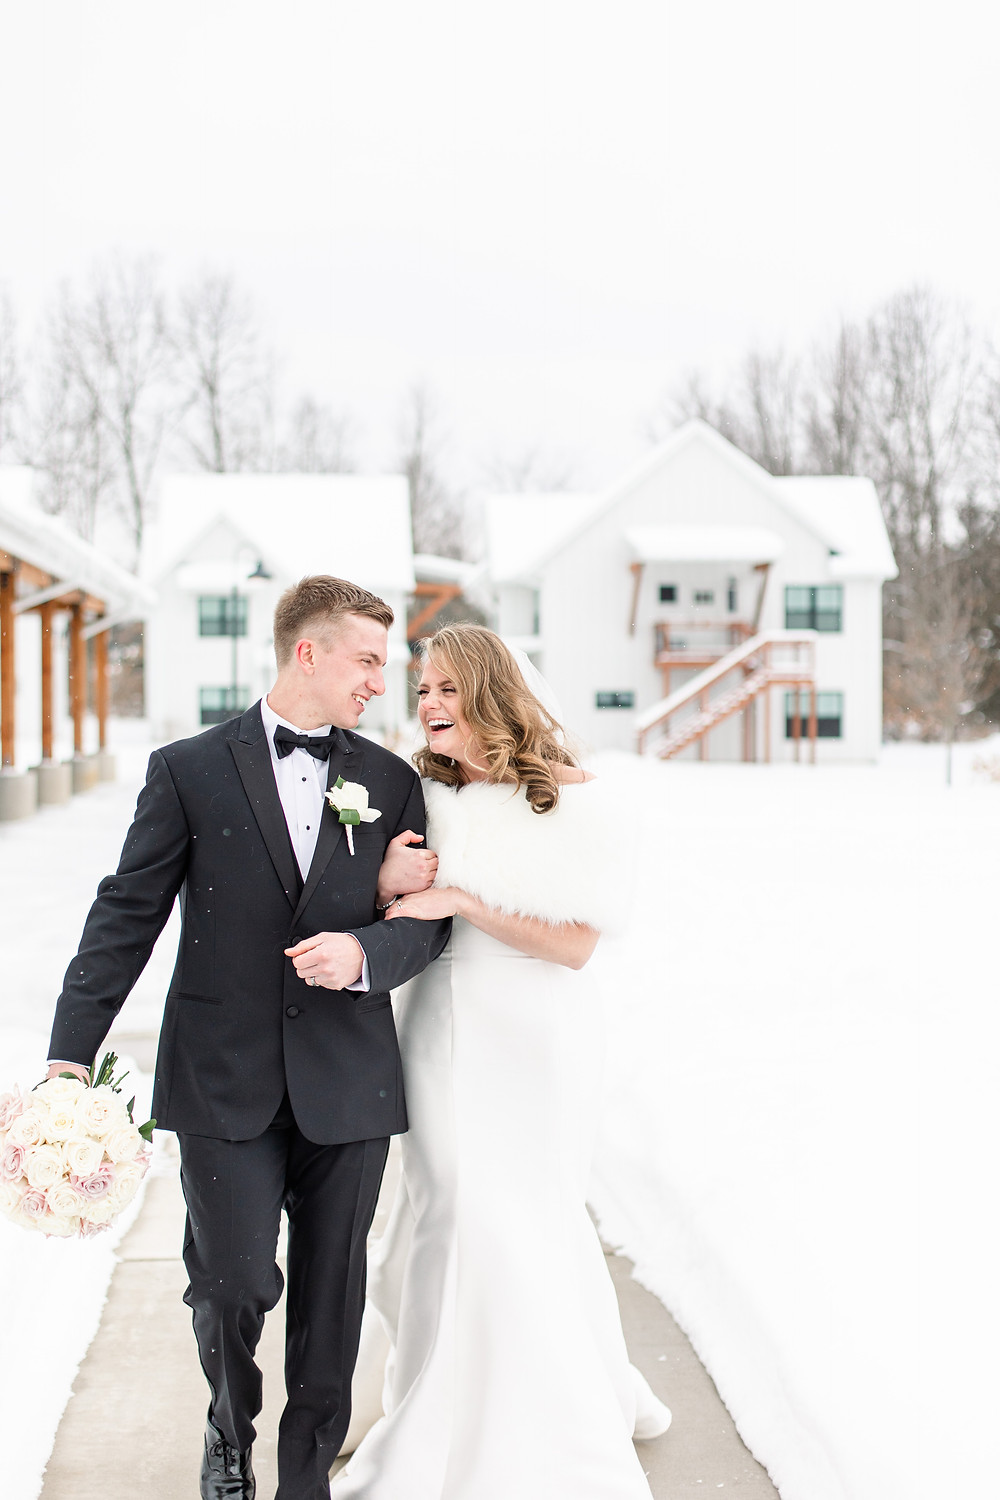 Josh and Andrea wedding photography husband and wife photographer team michigan venue Bay Pointe Woods shelbyville snow winter wedding bride and groom smiling laughing walking